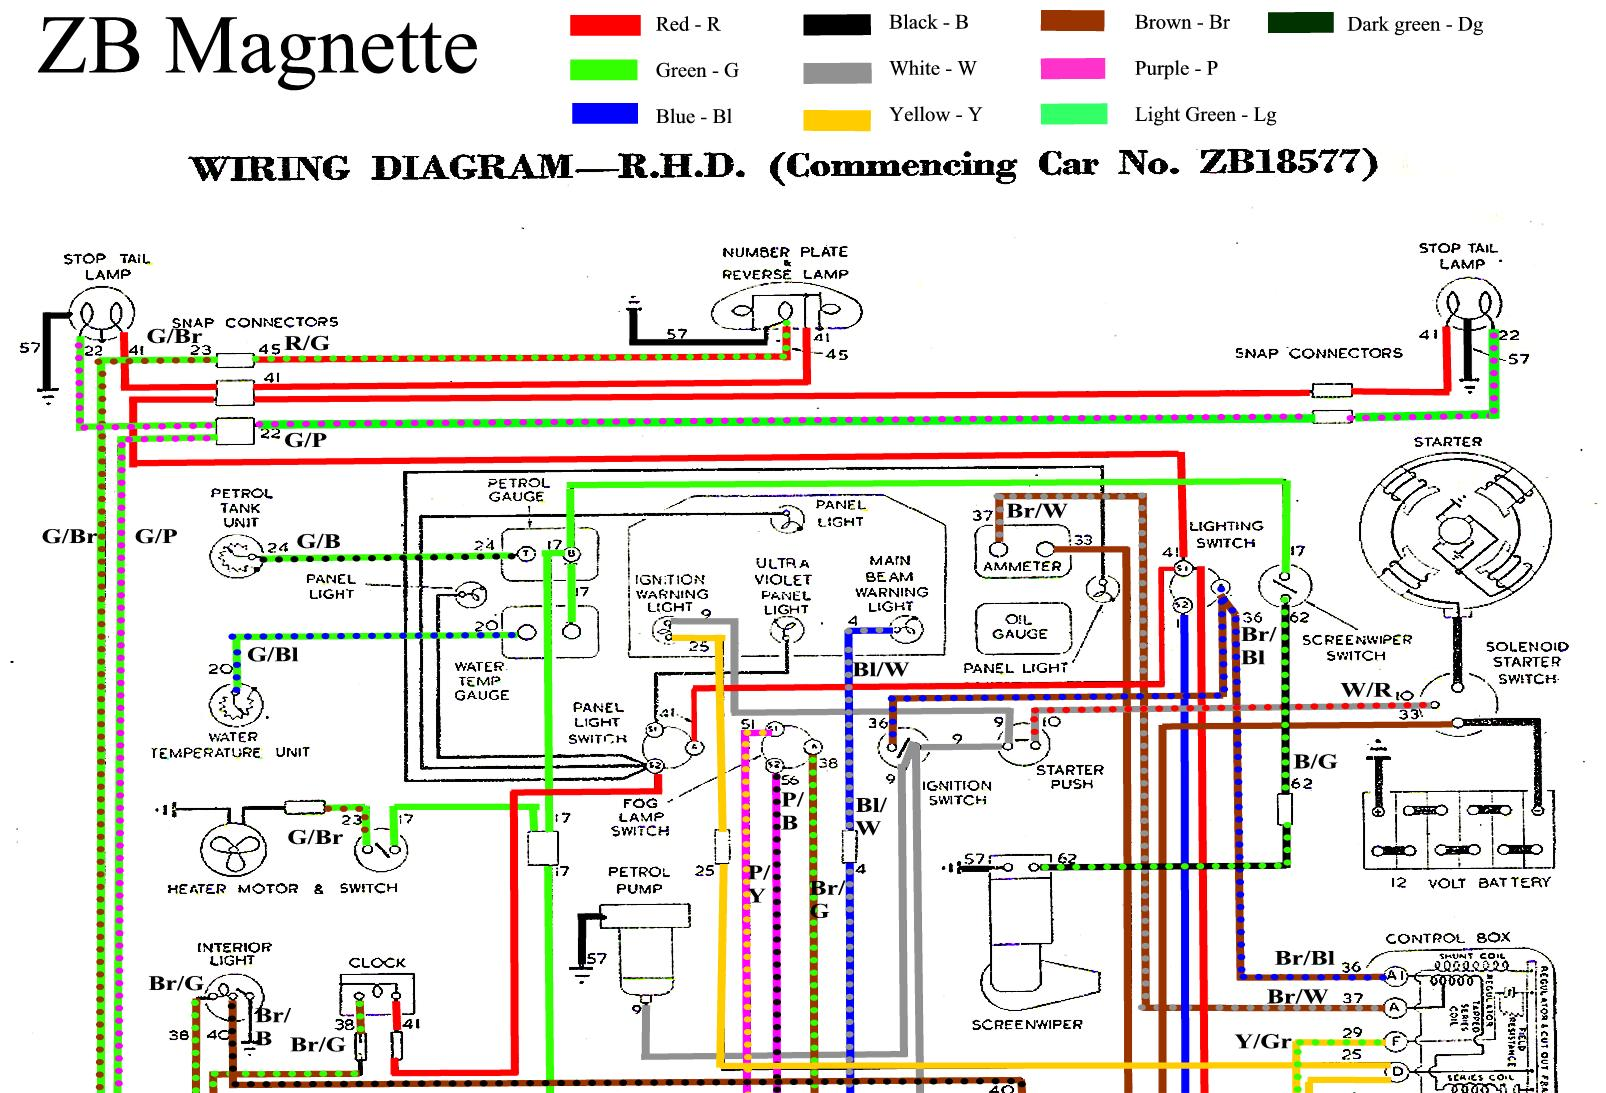 Mg Wiring Diagram from tickell.me.uk